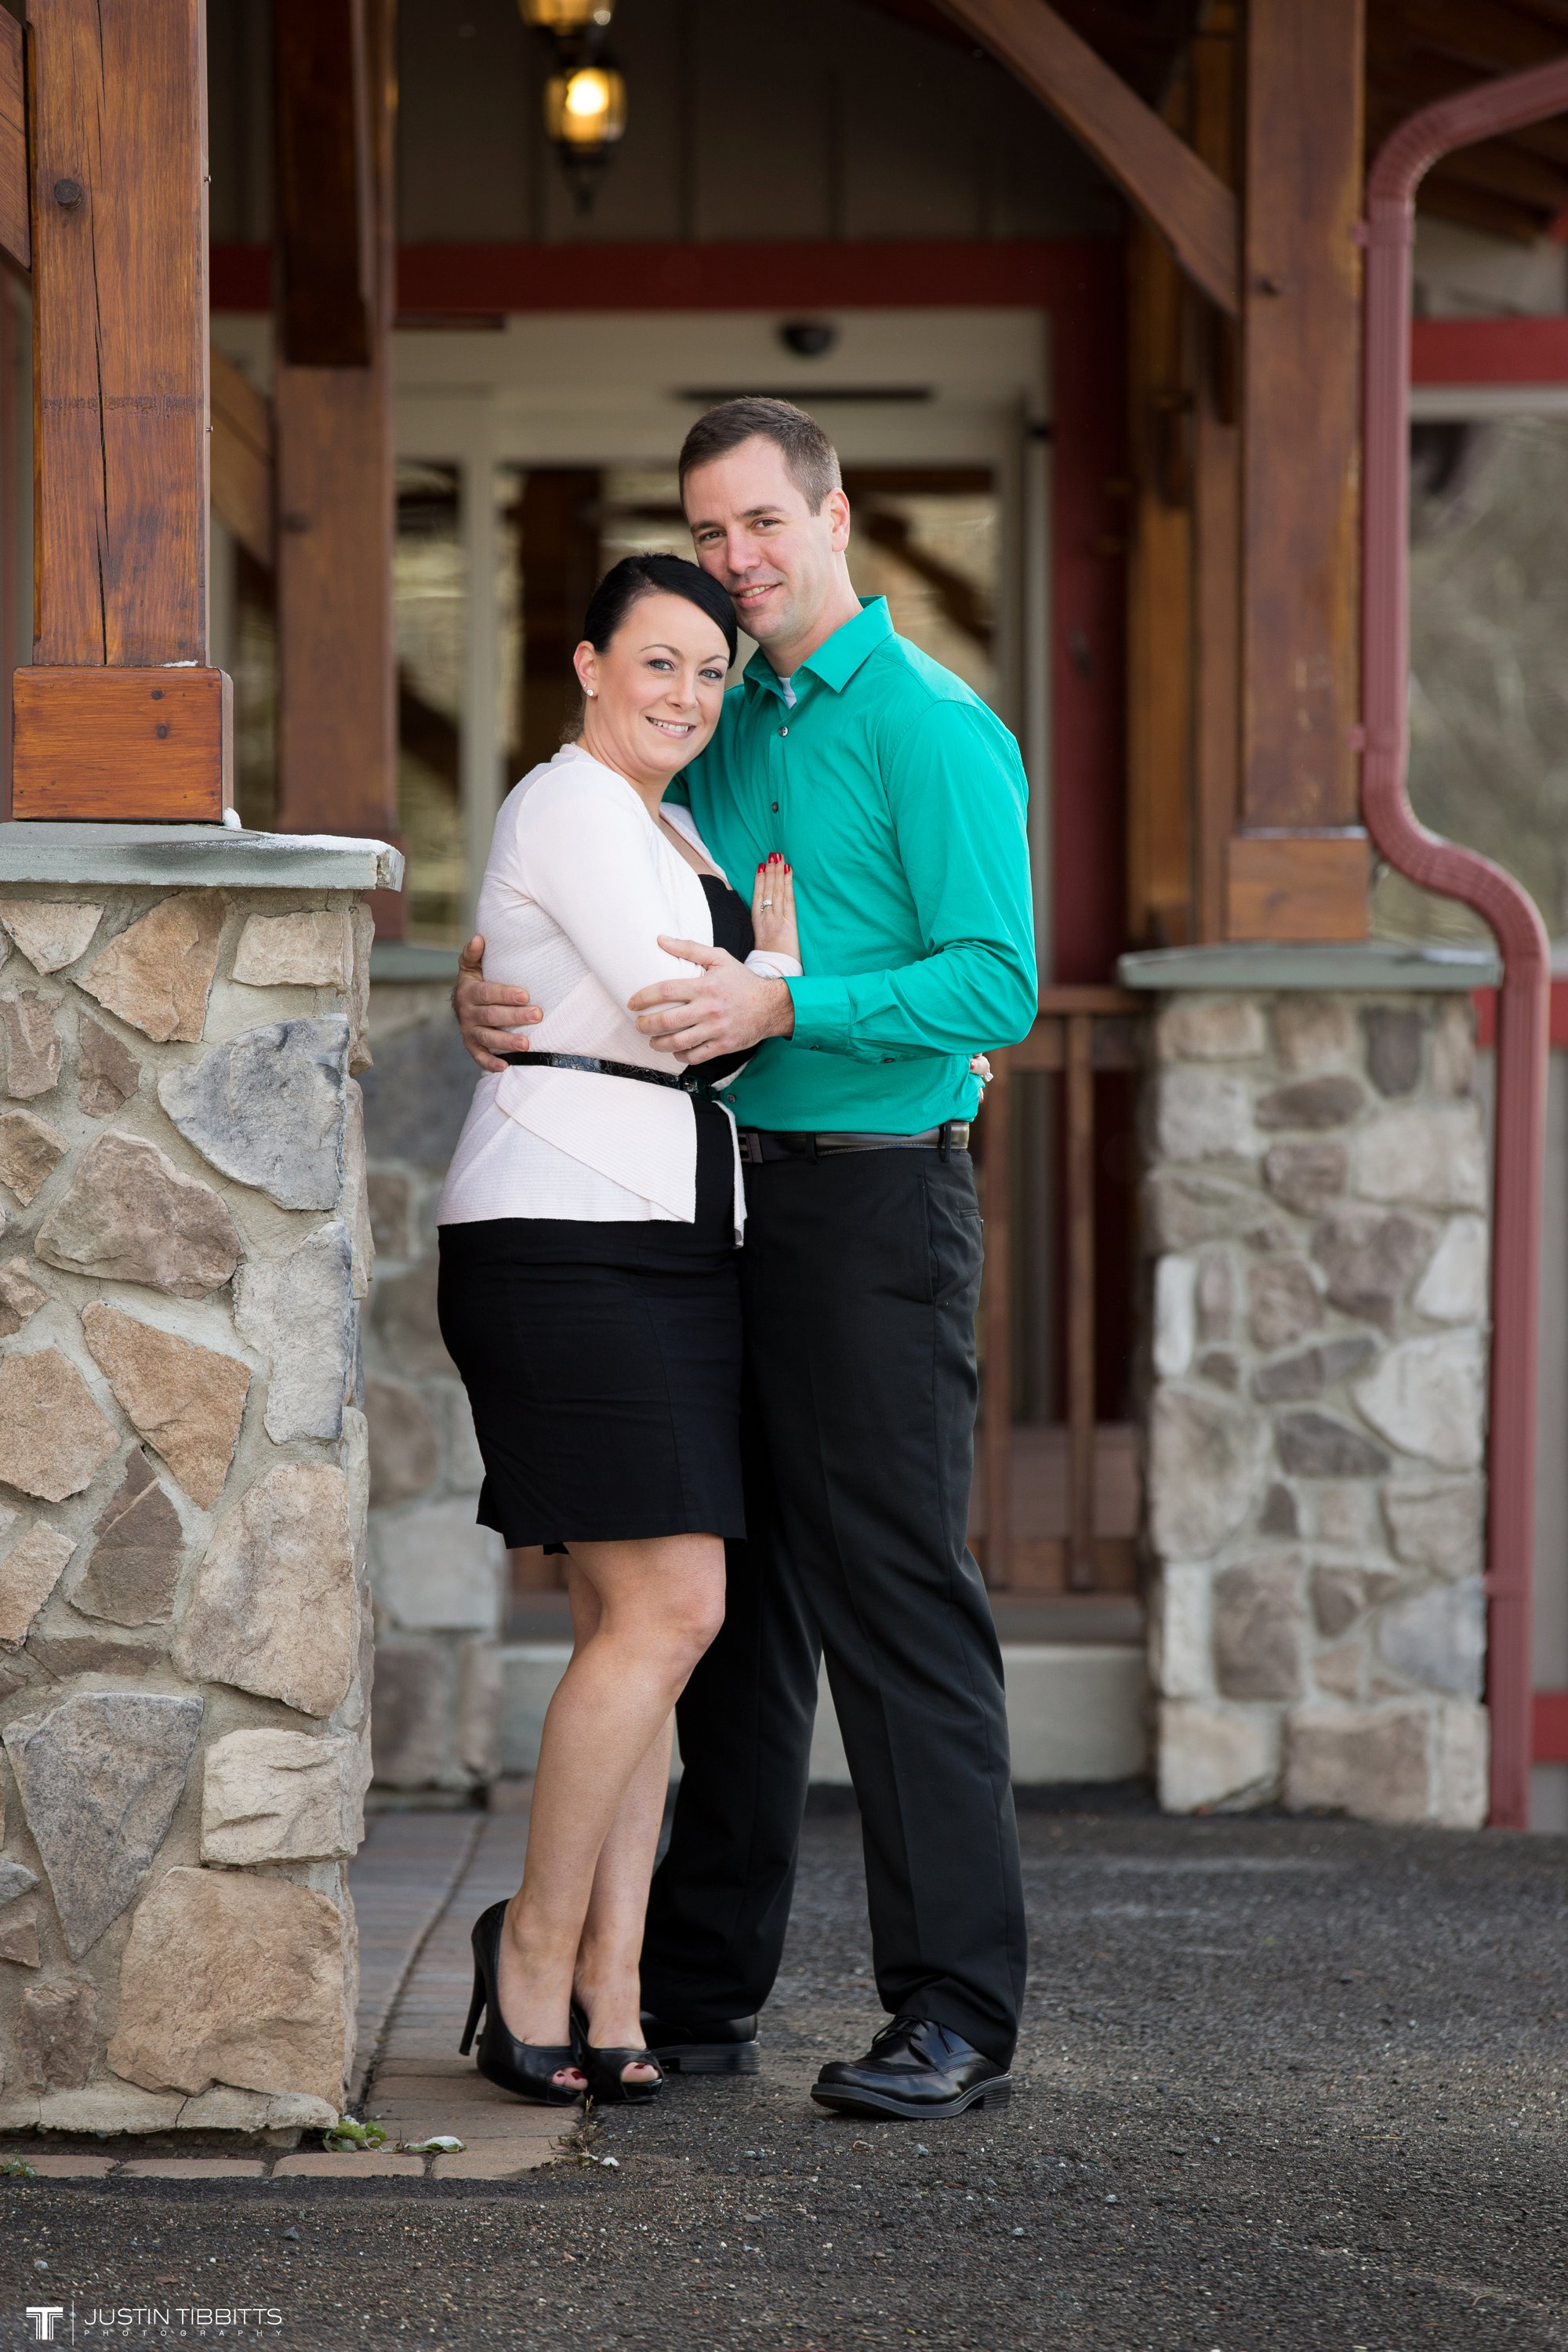 Justin Tibbitts Photography Kristie and Gregs Windham Mountain Resort Engagement Shoot-16